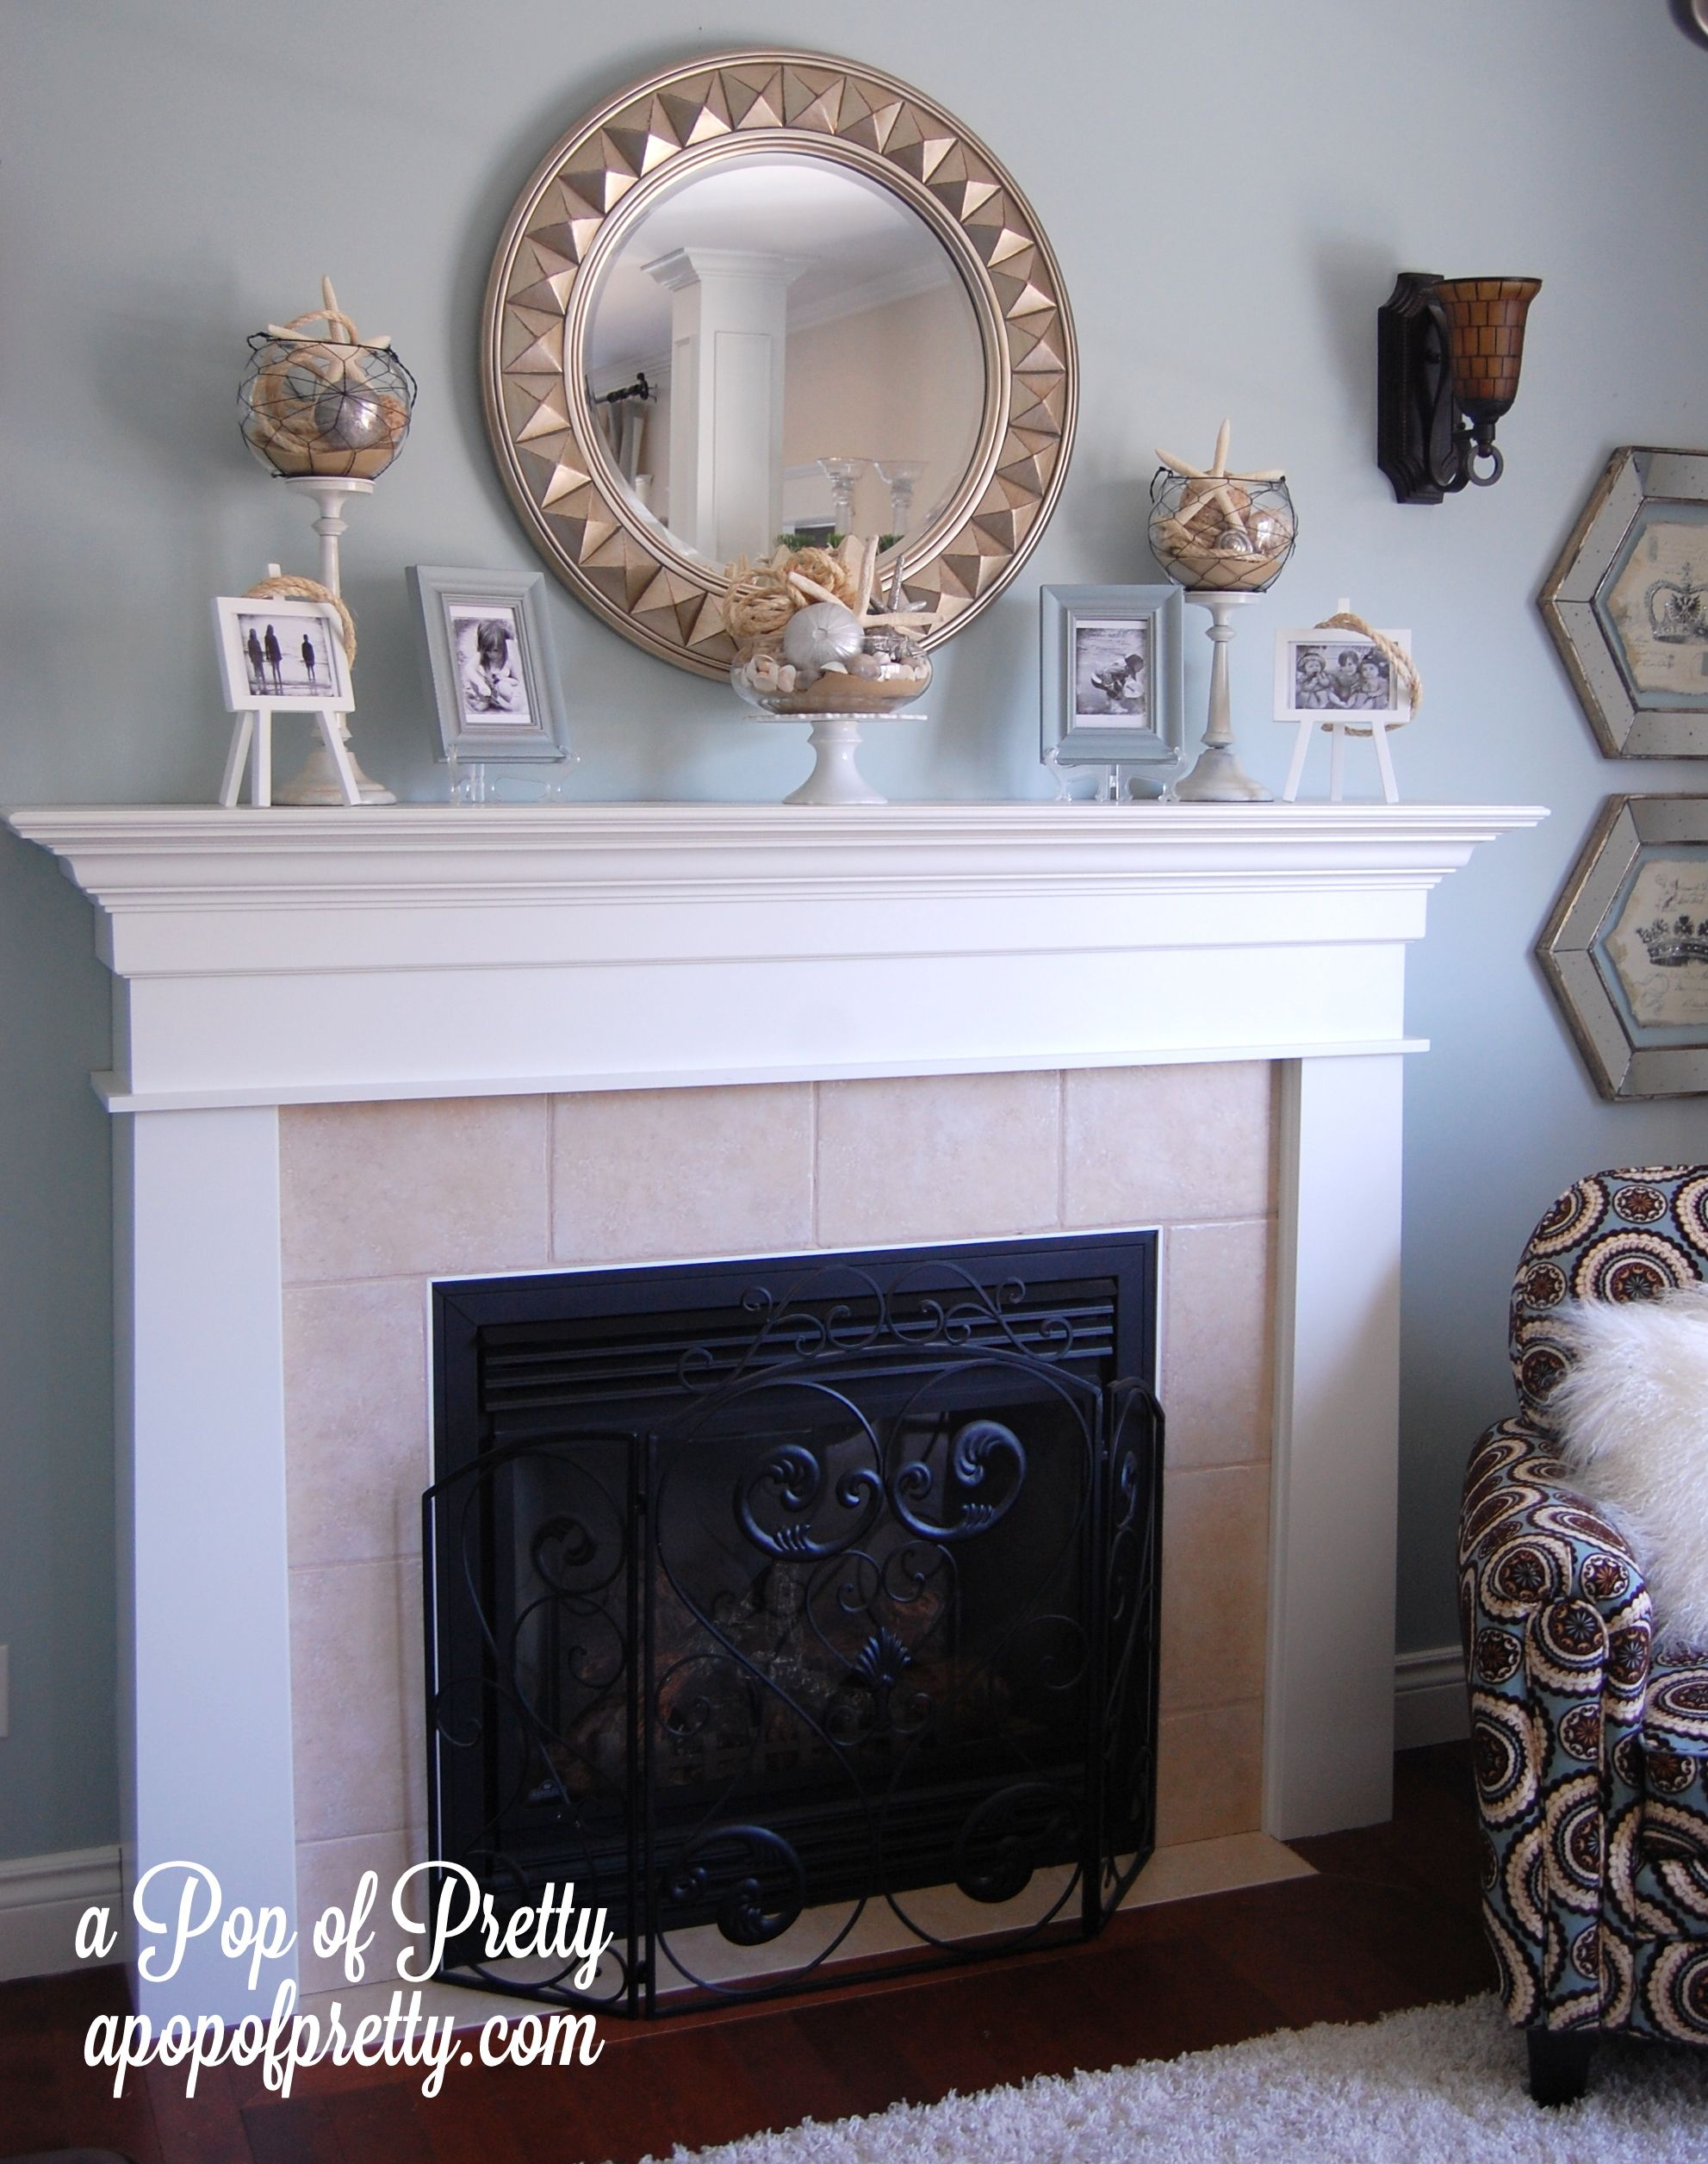 Unique Fireplace Mantel with Mirror